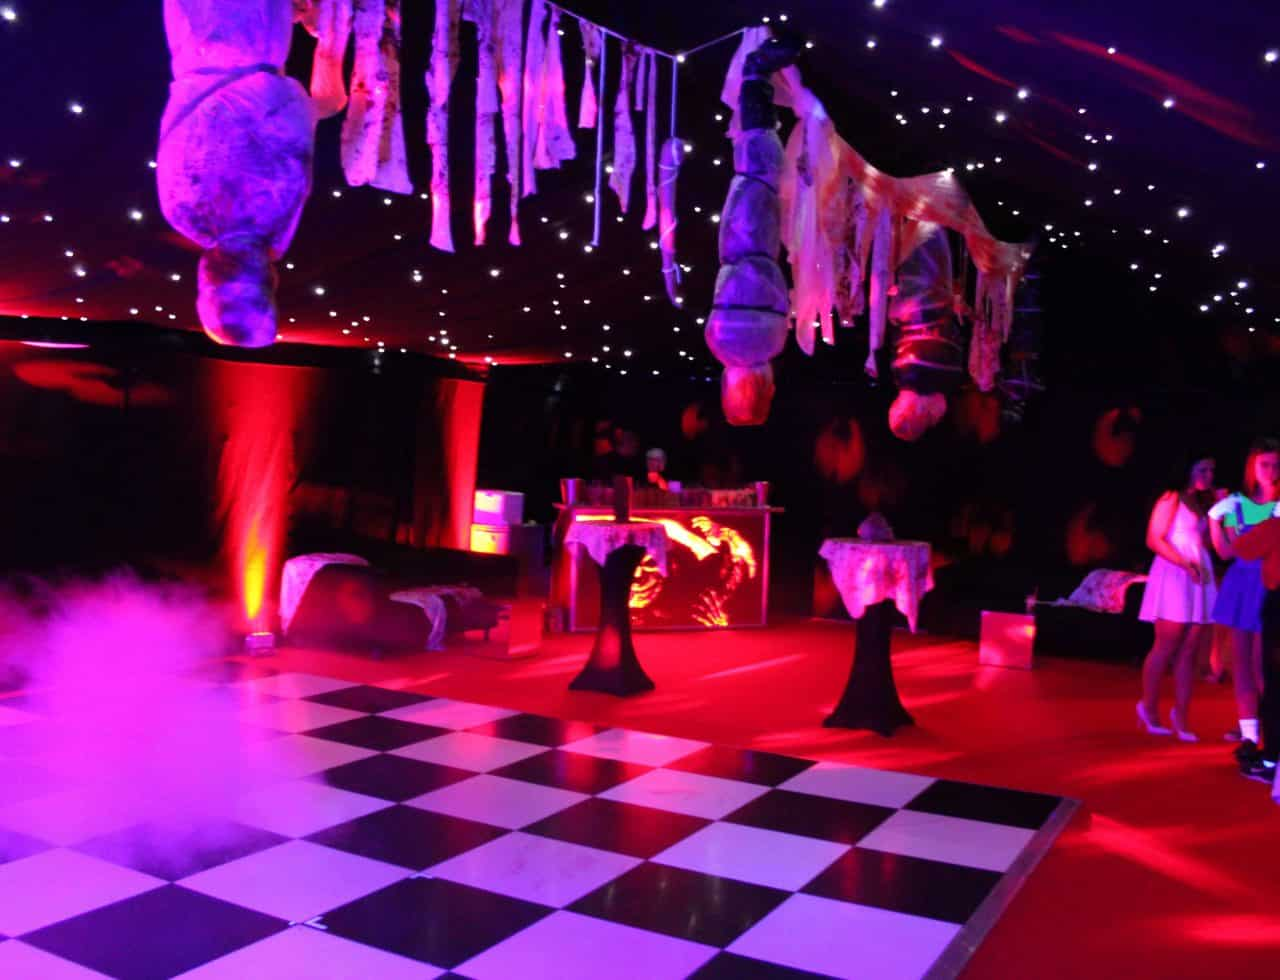 American Horror Story Halloween Venue Dressing service available to book for Halloween events.